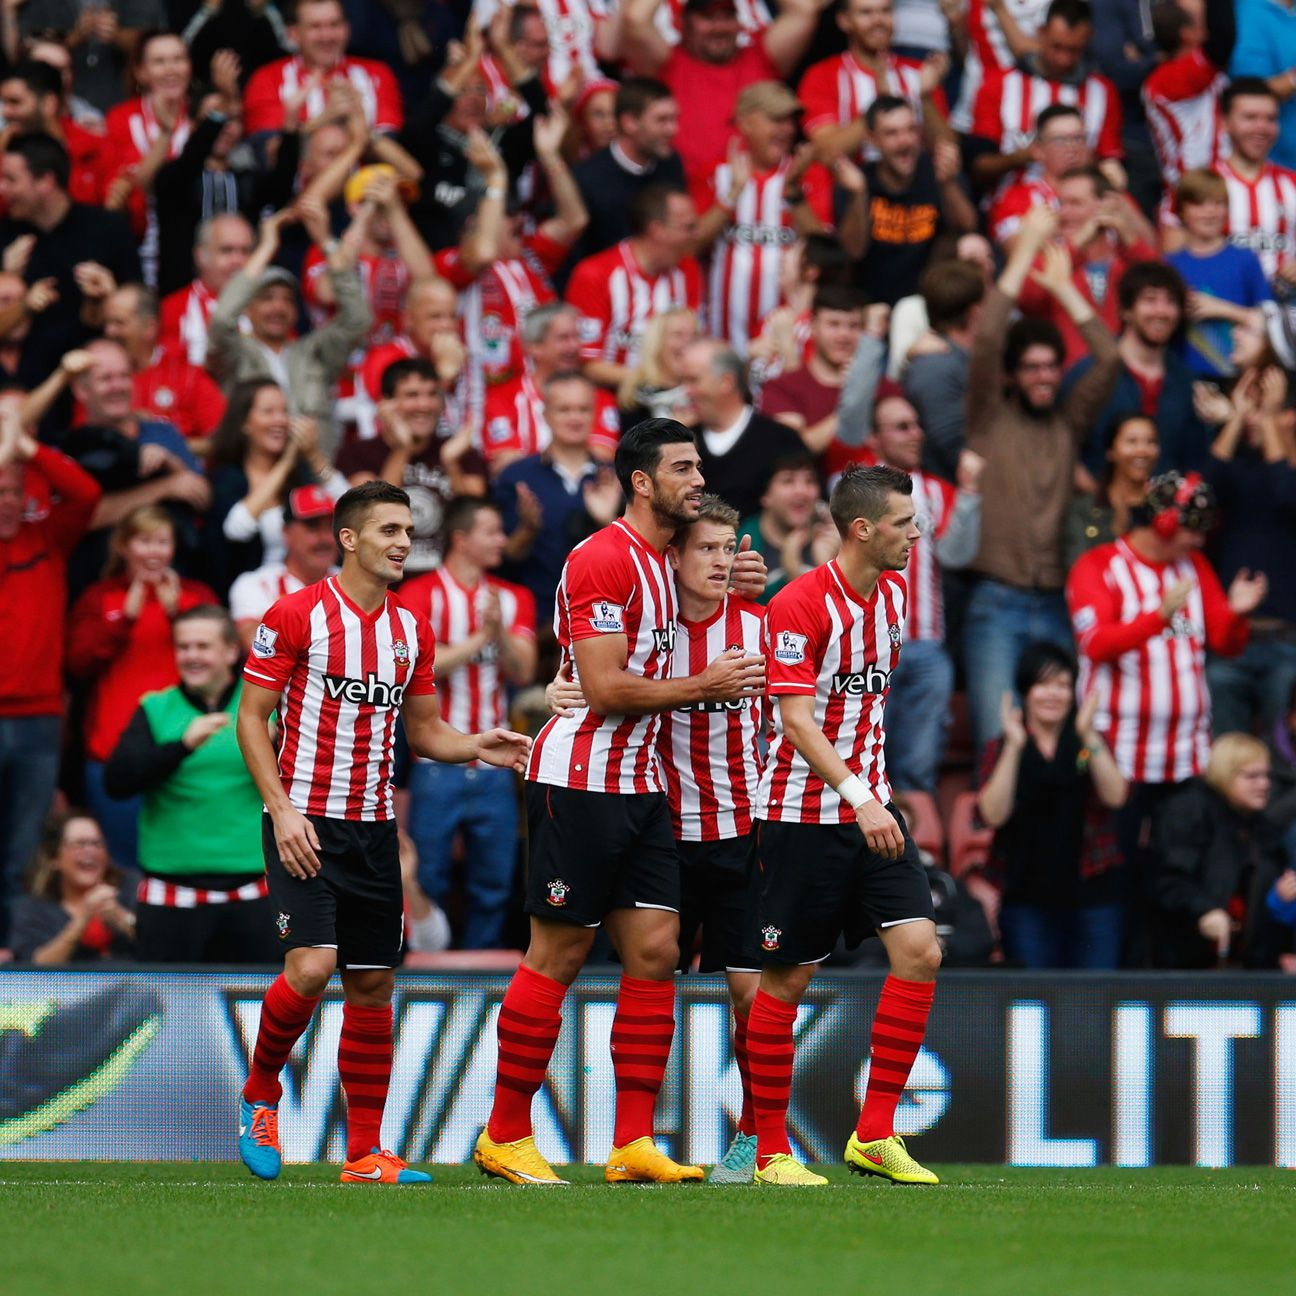 Graziano Pelle keeps on rolling for Southampton after Saints' 8-0 walloping of Sunderland.